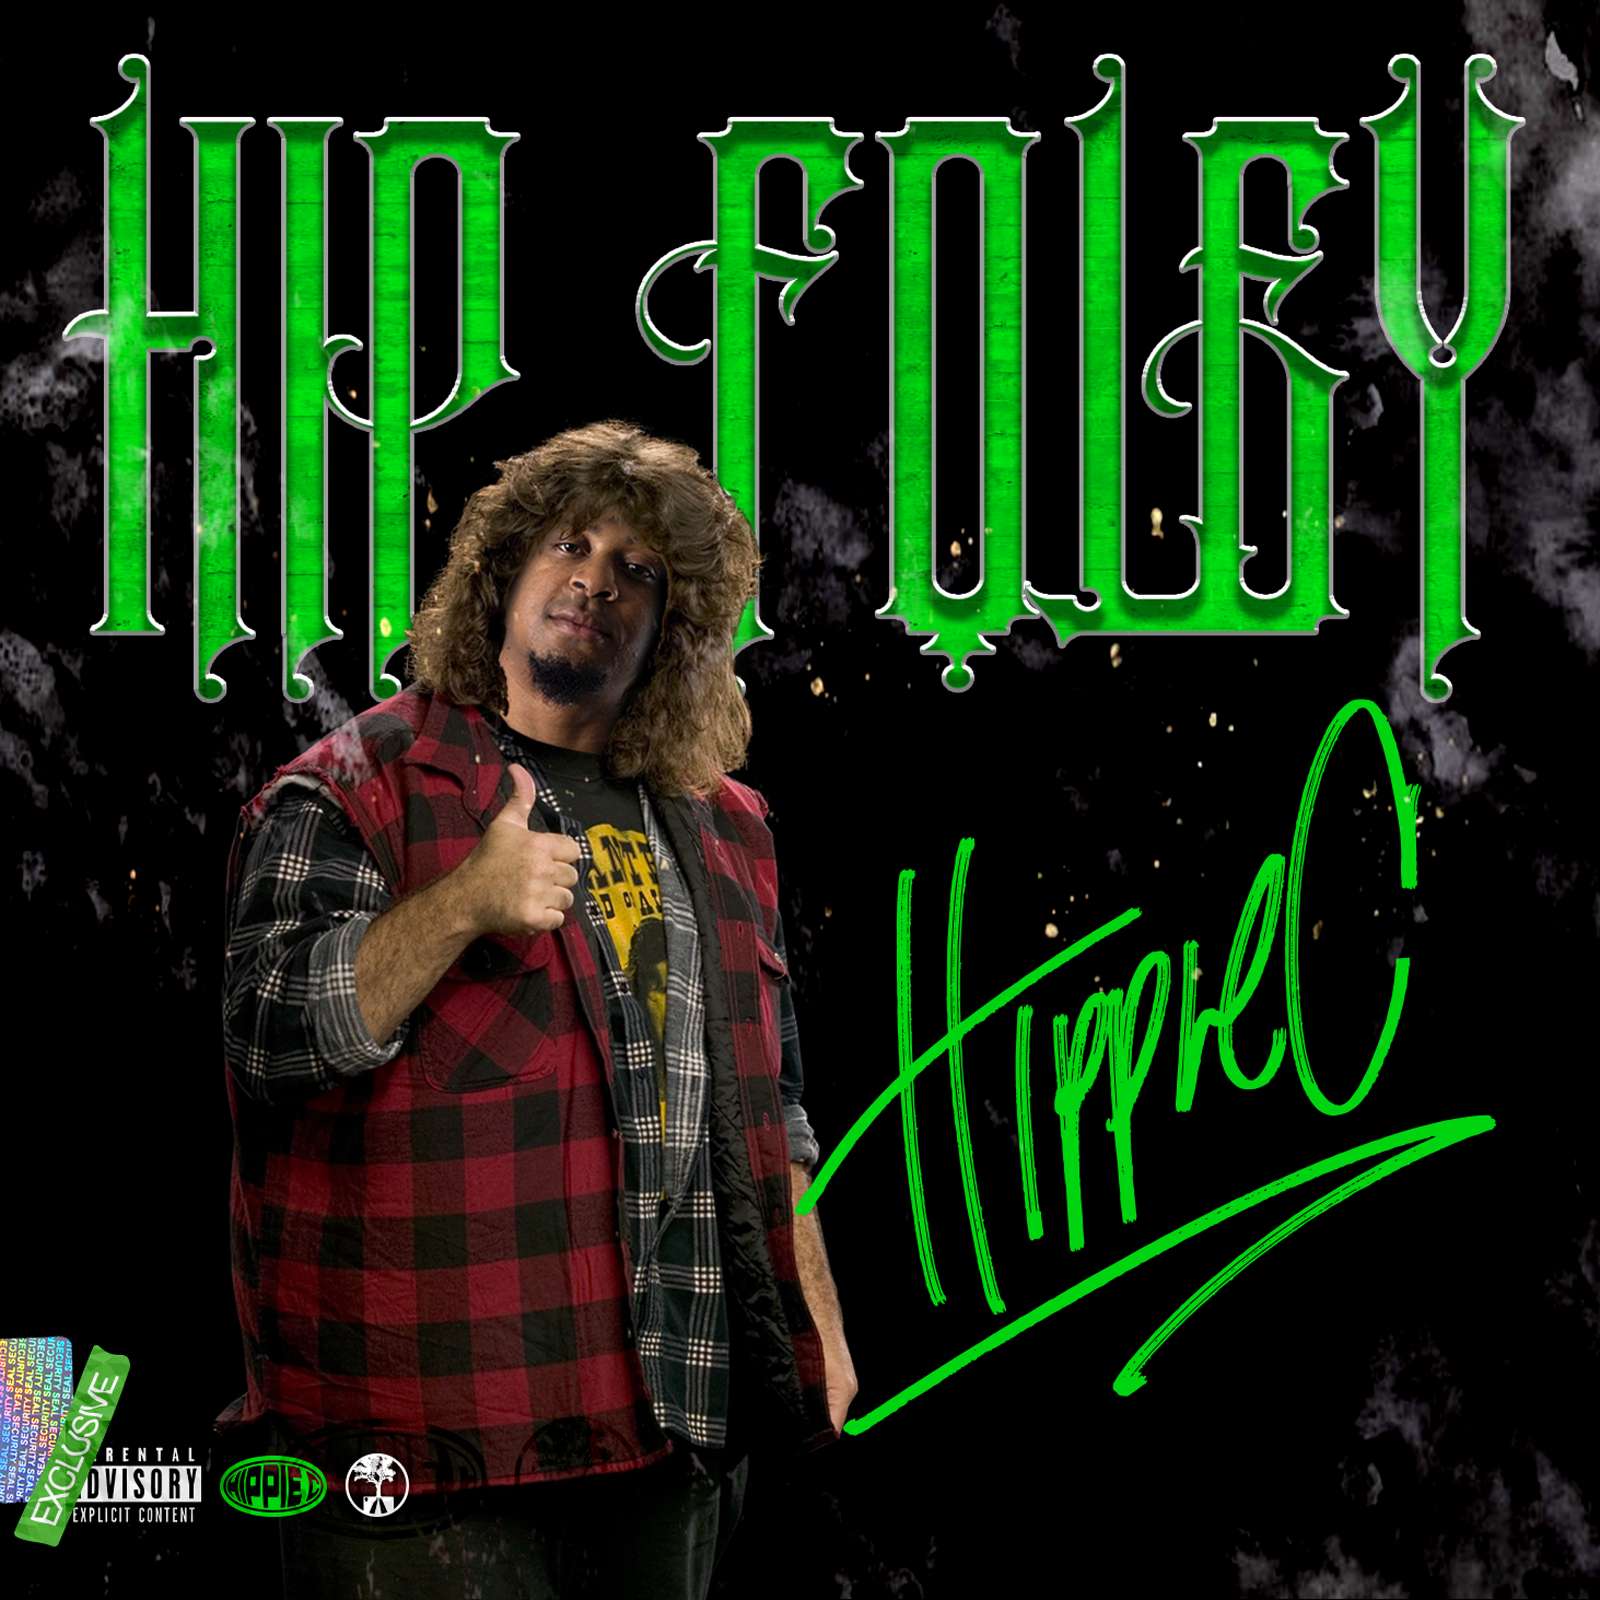 hc-hipfoley-cover2.png